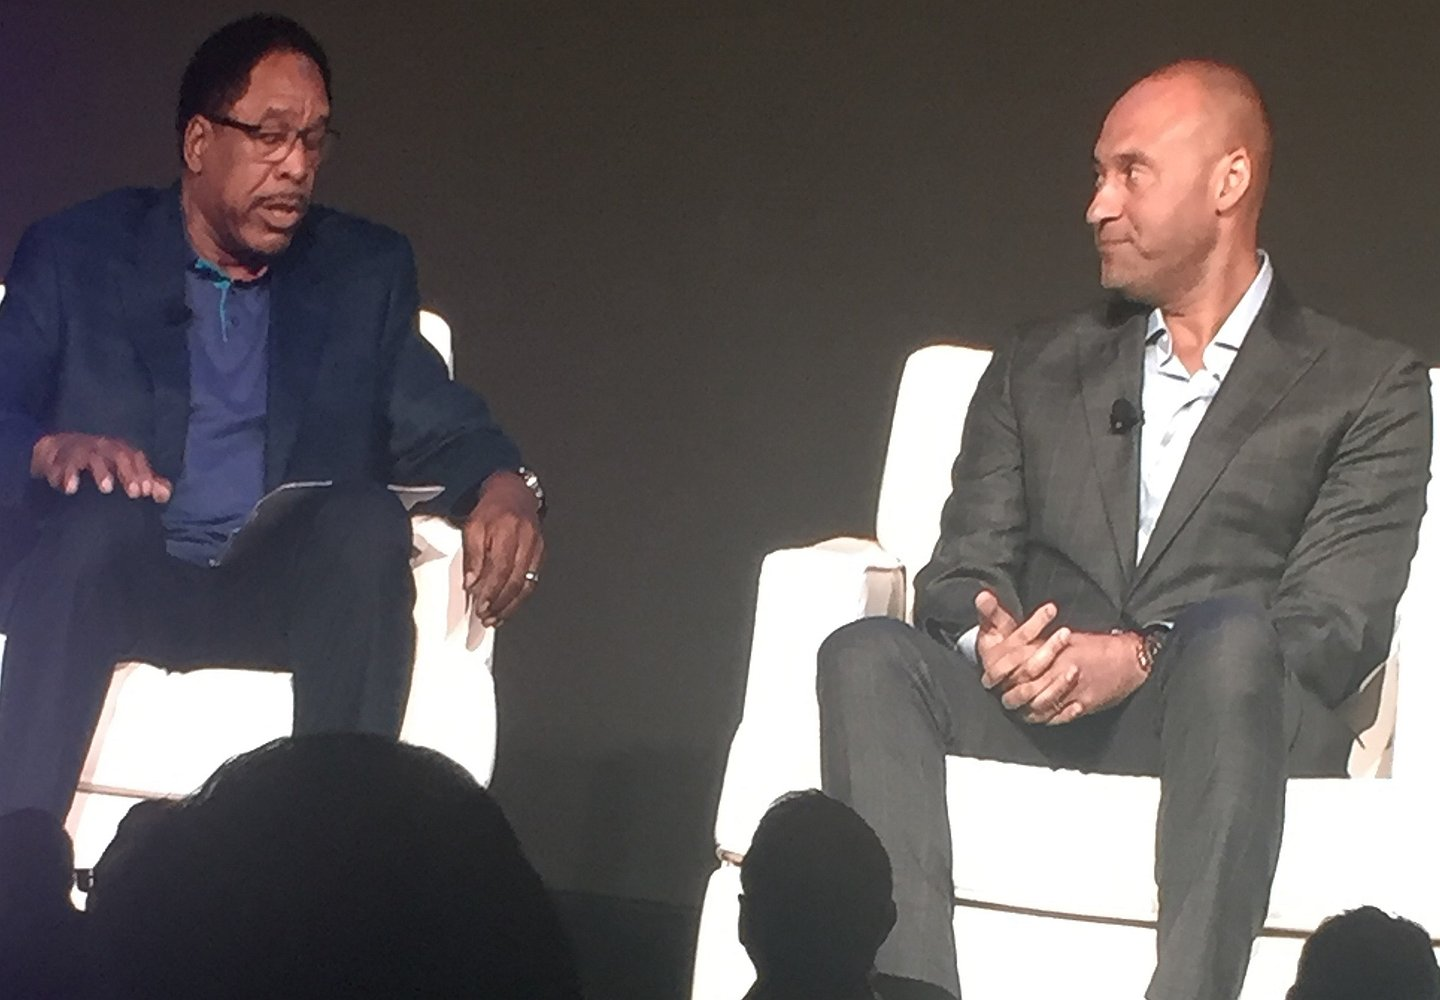 Derek Jeter's Guide for Success; Issa Rae's Advice to Advertisers